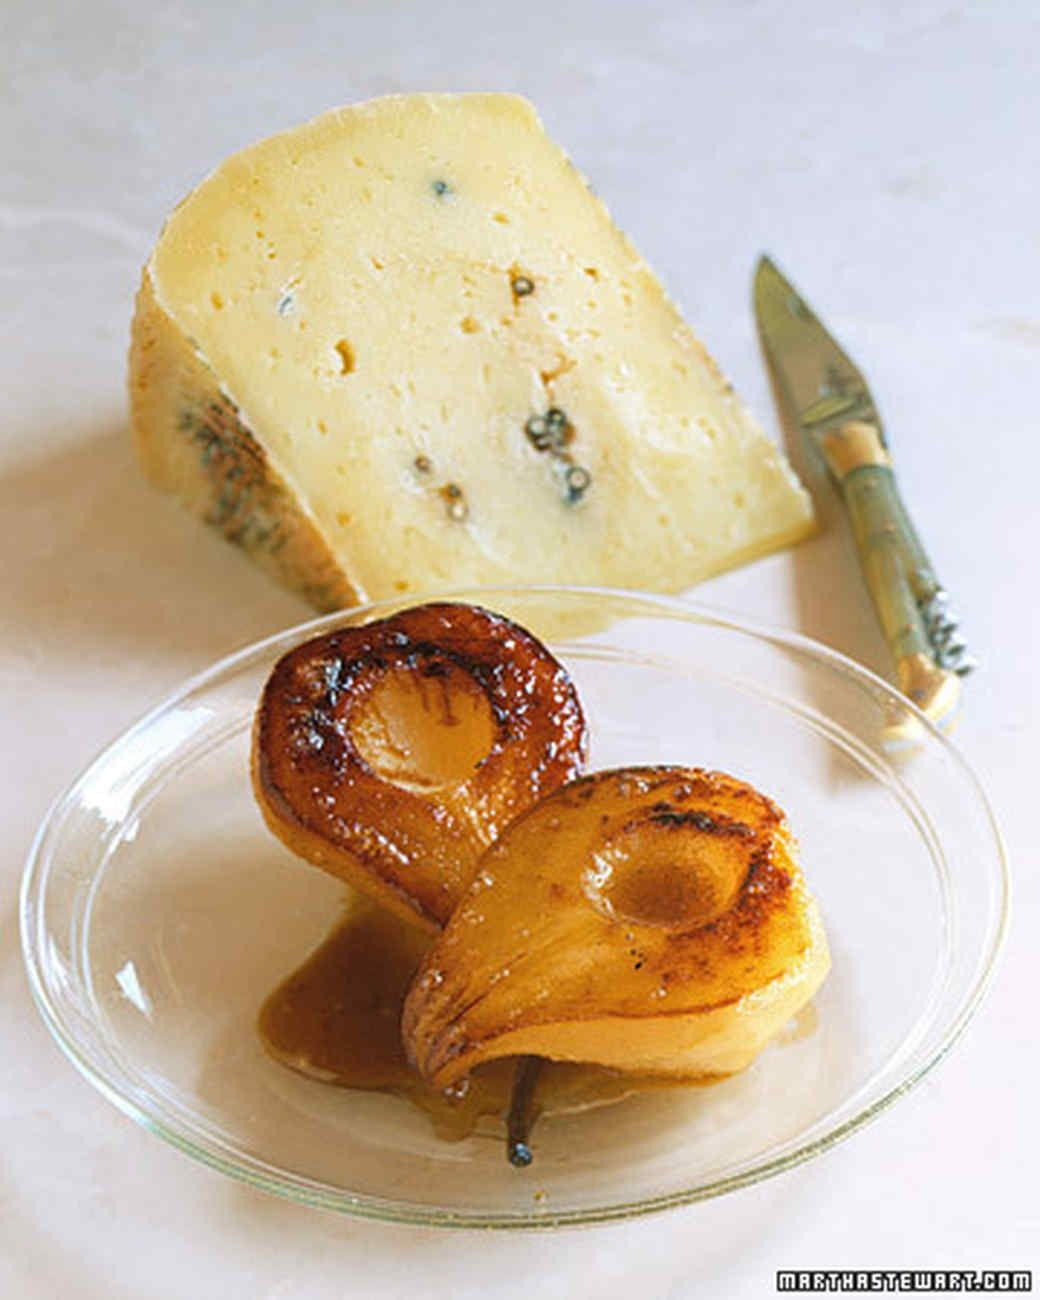 Look for a mild pecorino from Tuscany, sometimes called